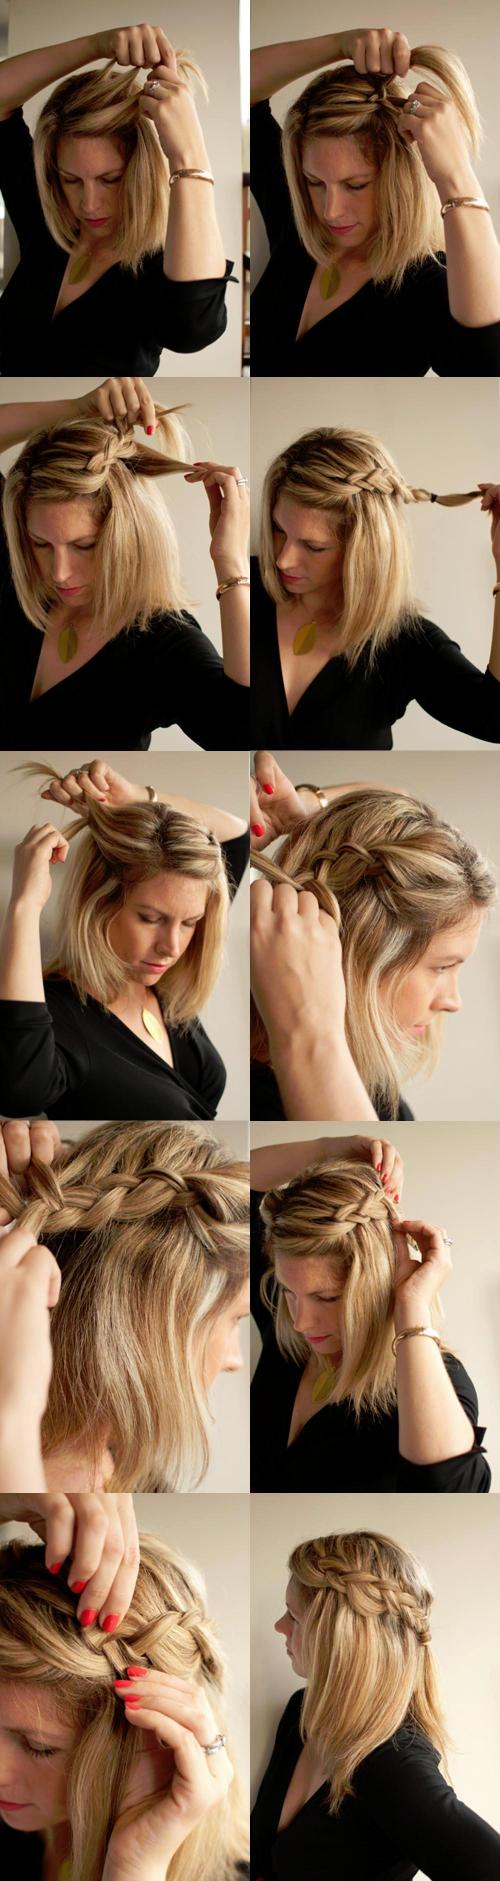 Backwards-or-inside-out-braid-Tutorial